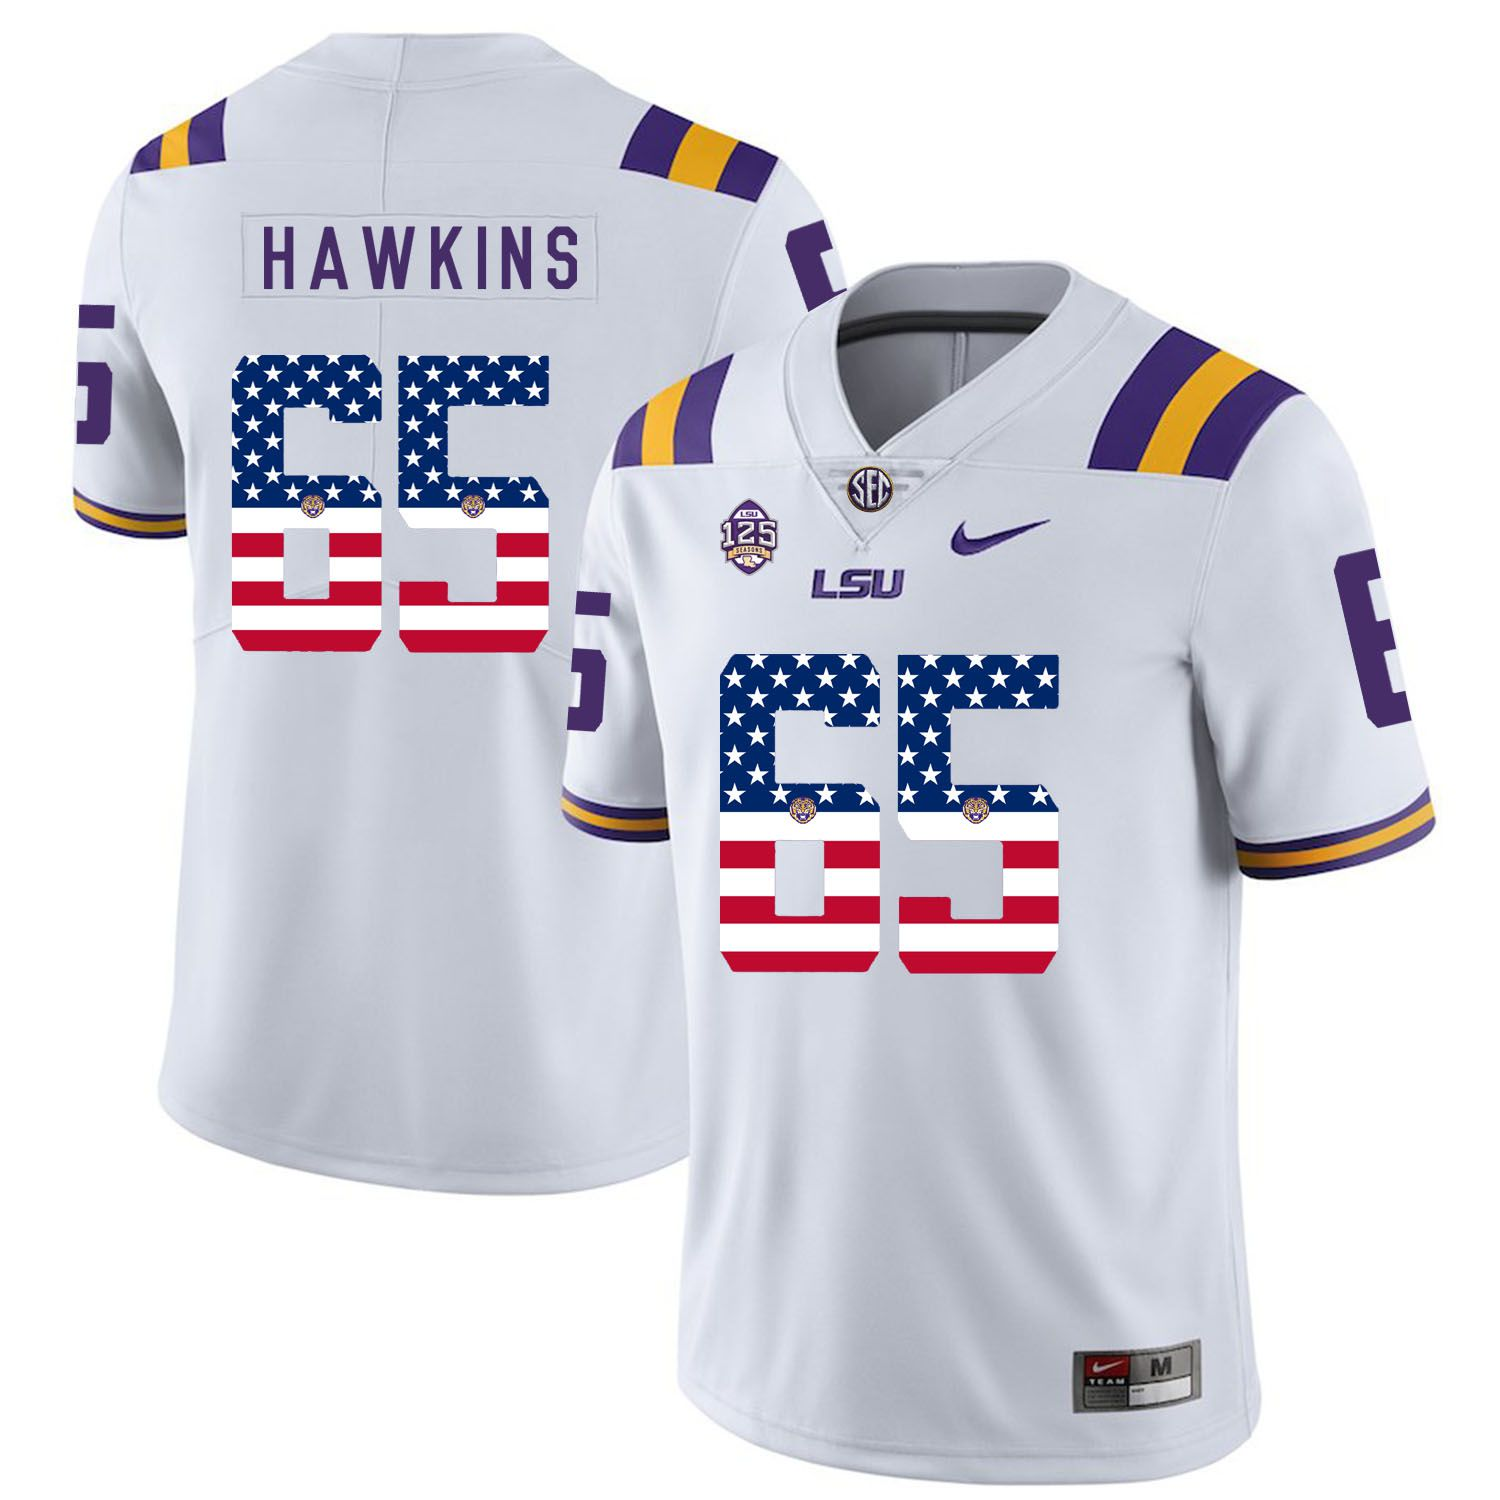 Men LSU Tigers 65 Hawkins White Flag Customized NCAA Jerseys